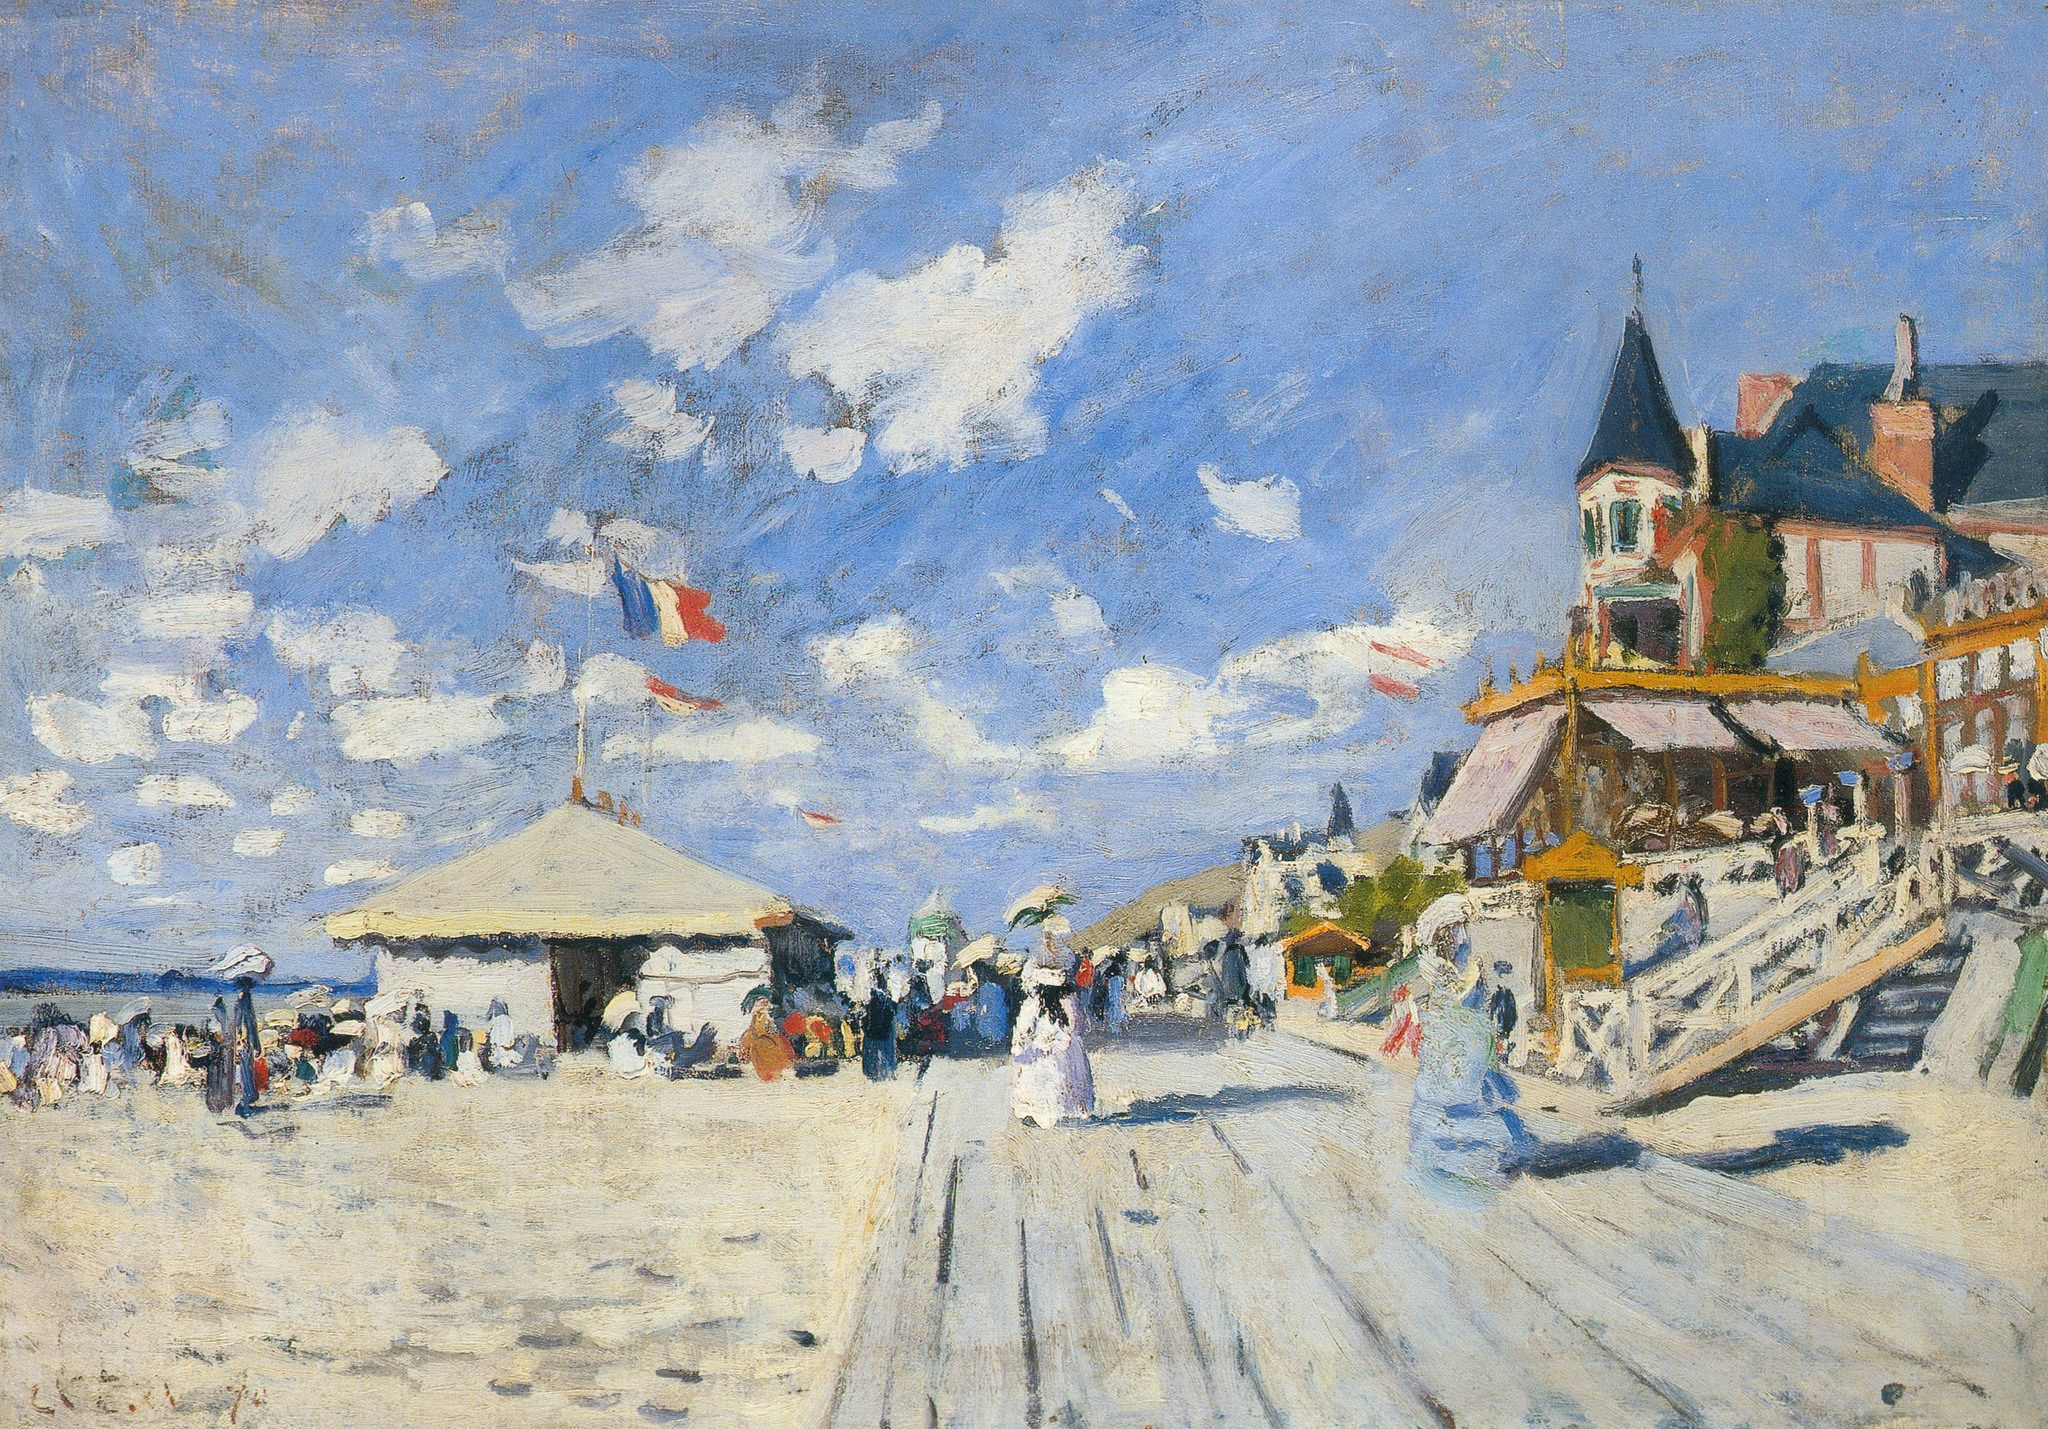 Claude Monet - The Boardwalk on the Beach at Trouville [1870] | [Private Collection - Oil on canvas, 50 x 70 cm]